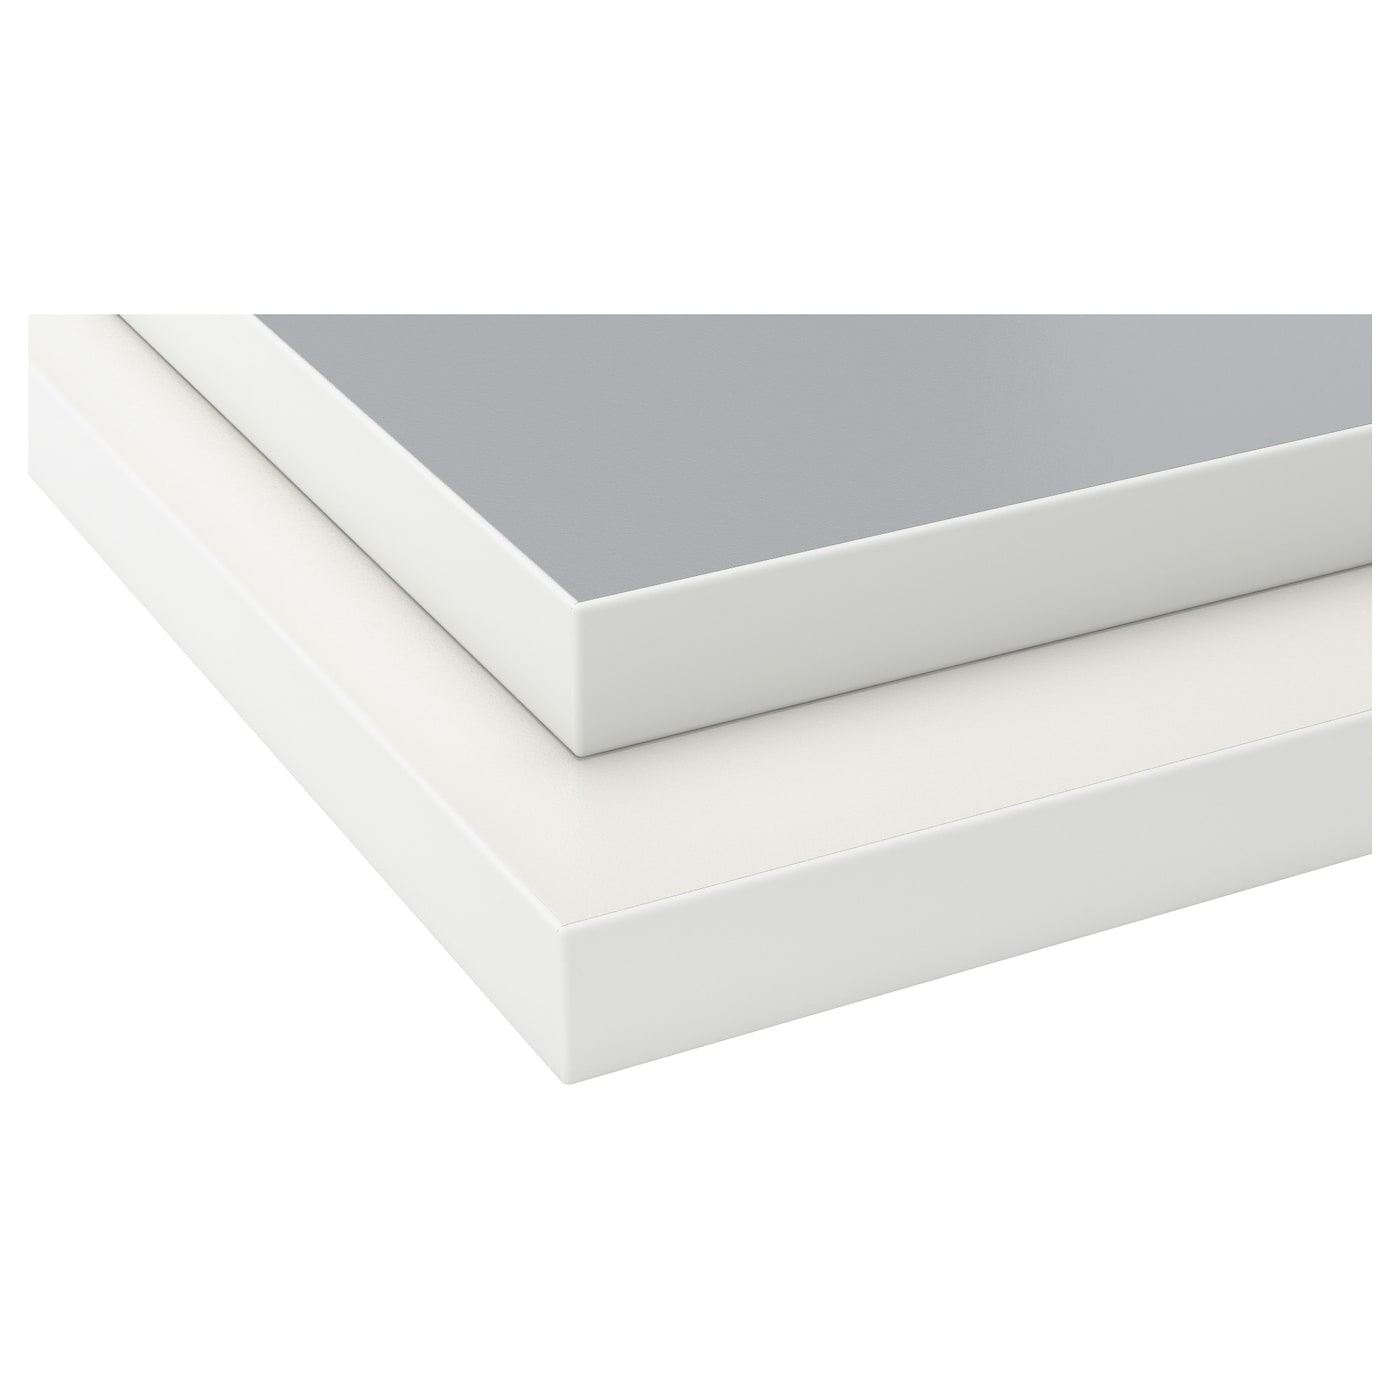 ekbacken worktop double sided light grey white with white